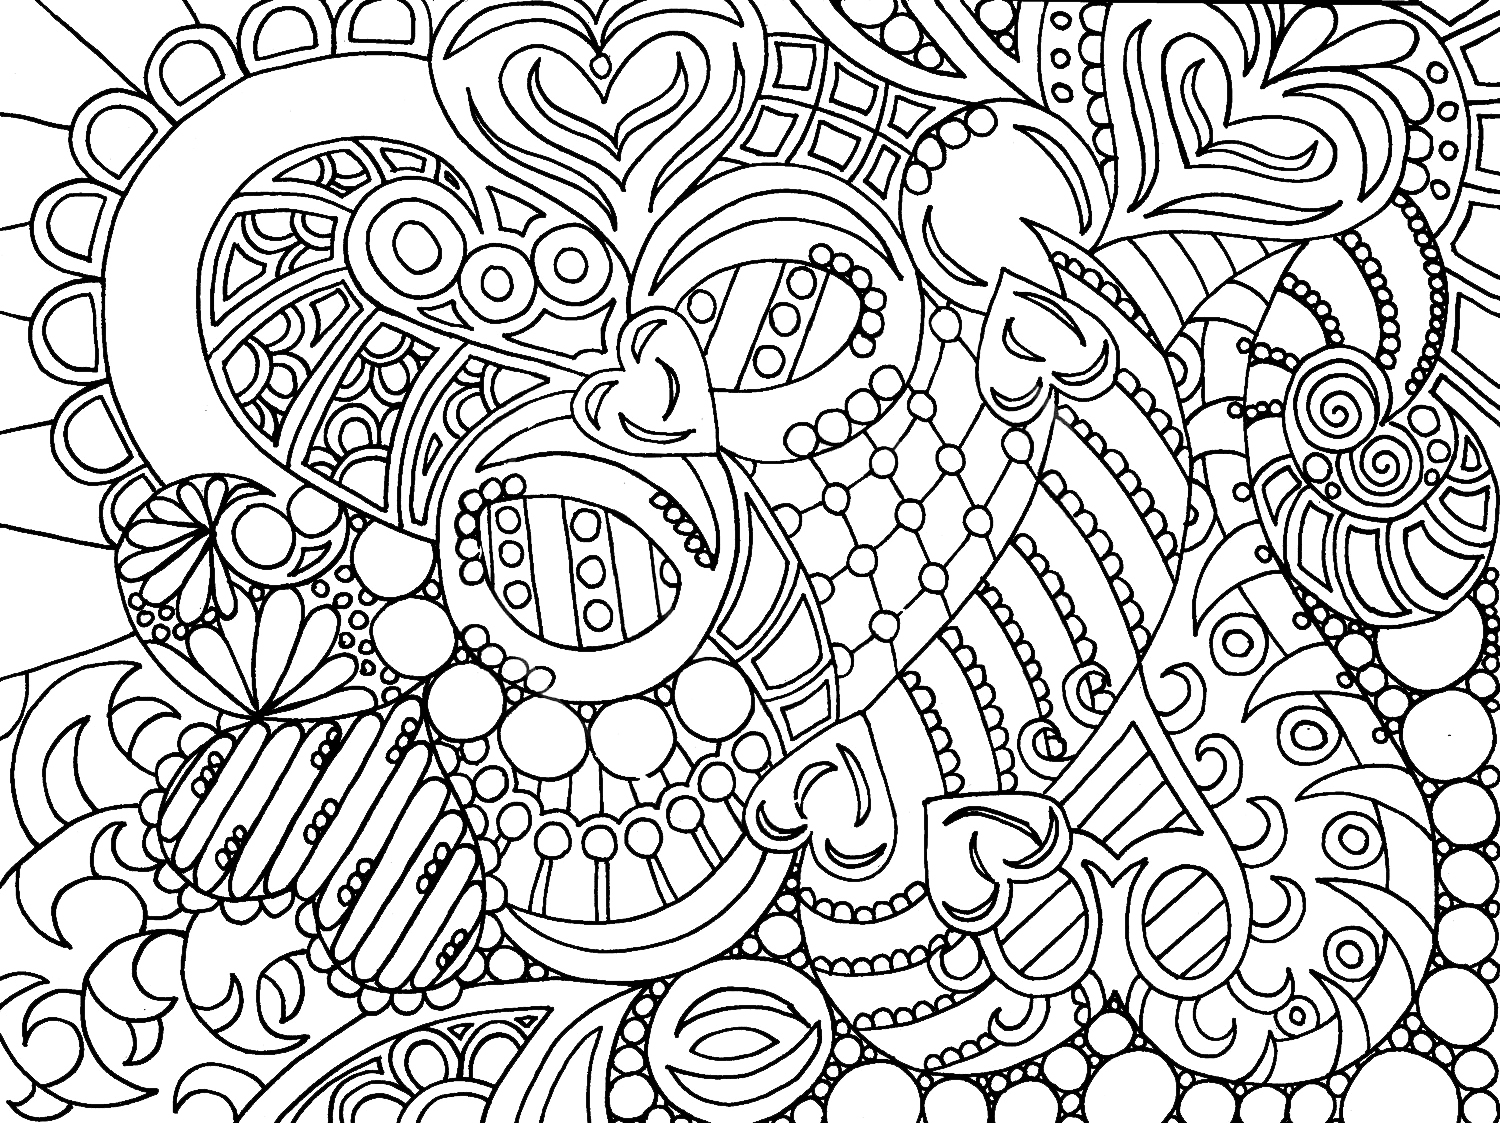 Free coloring pages for adults only coloring pages for Free color page printables